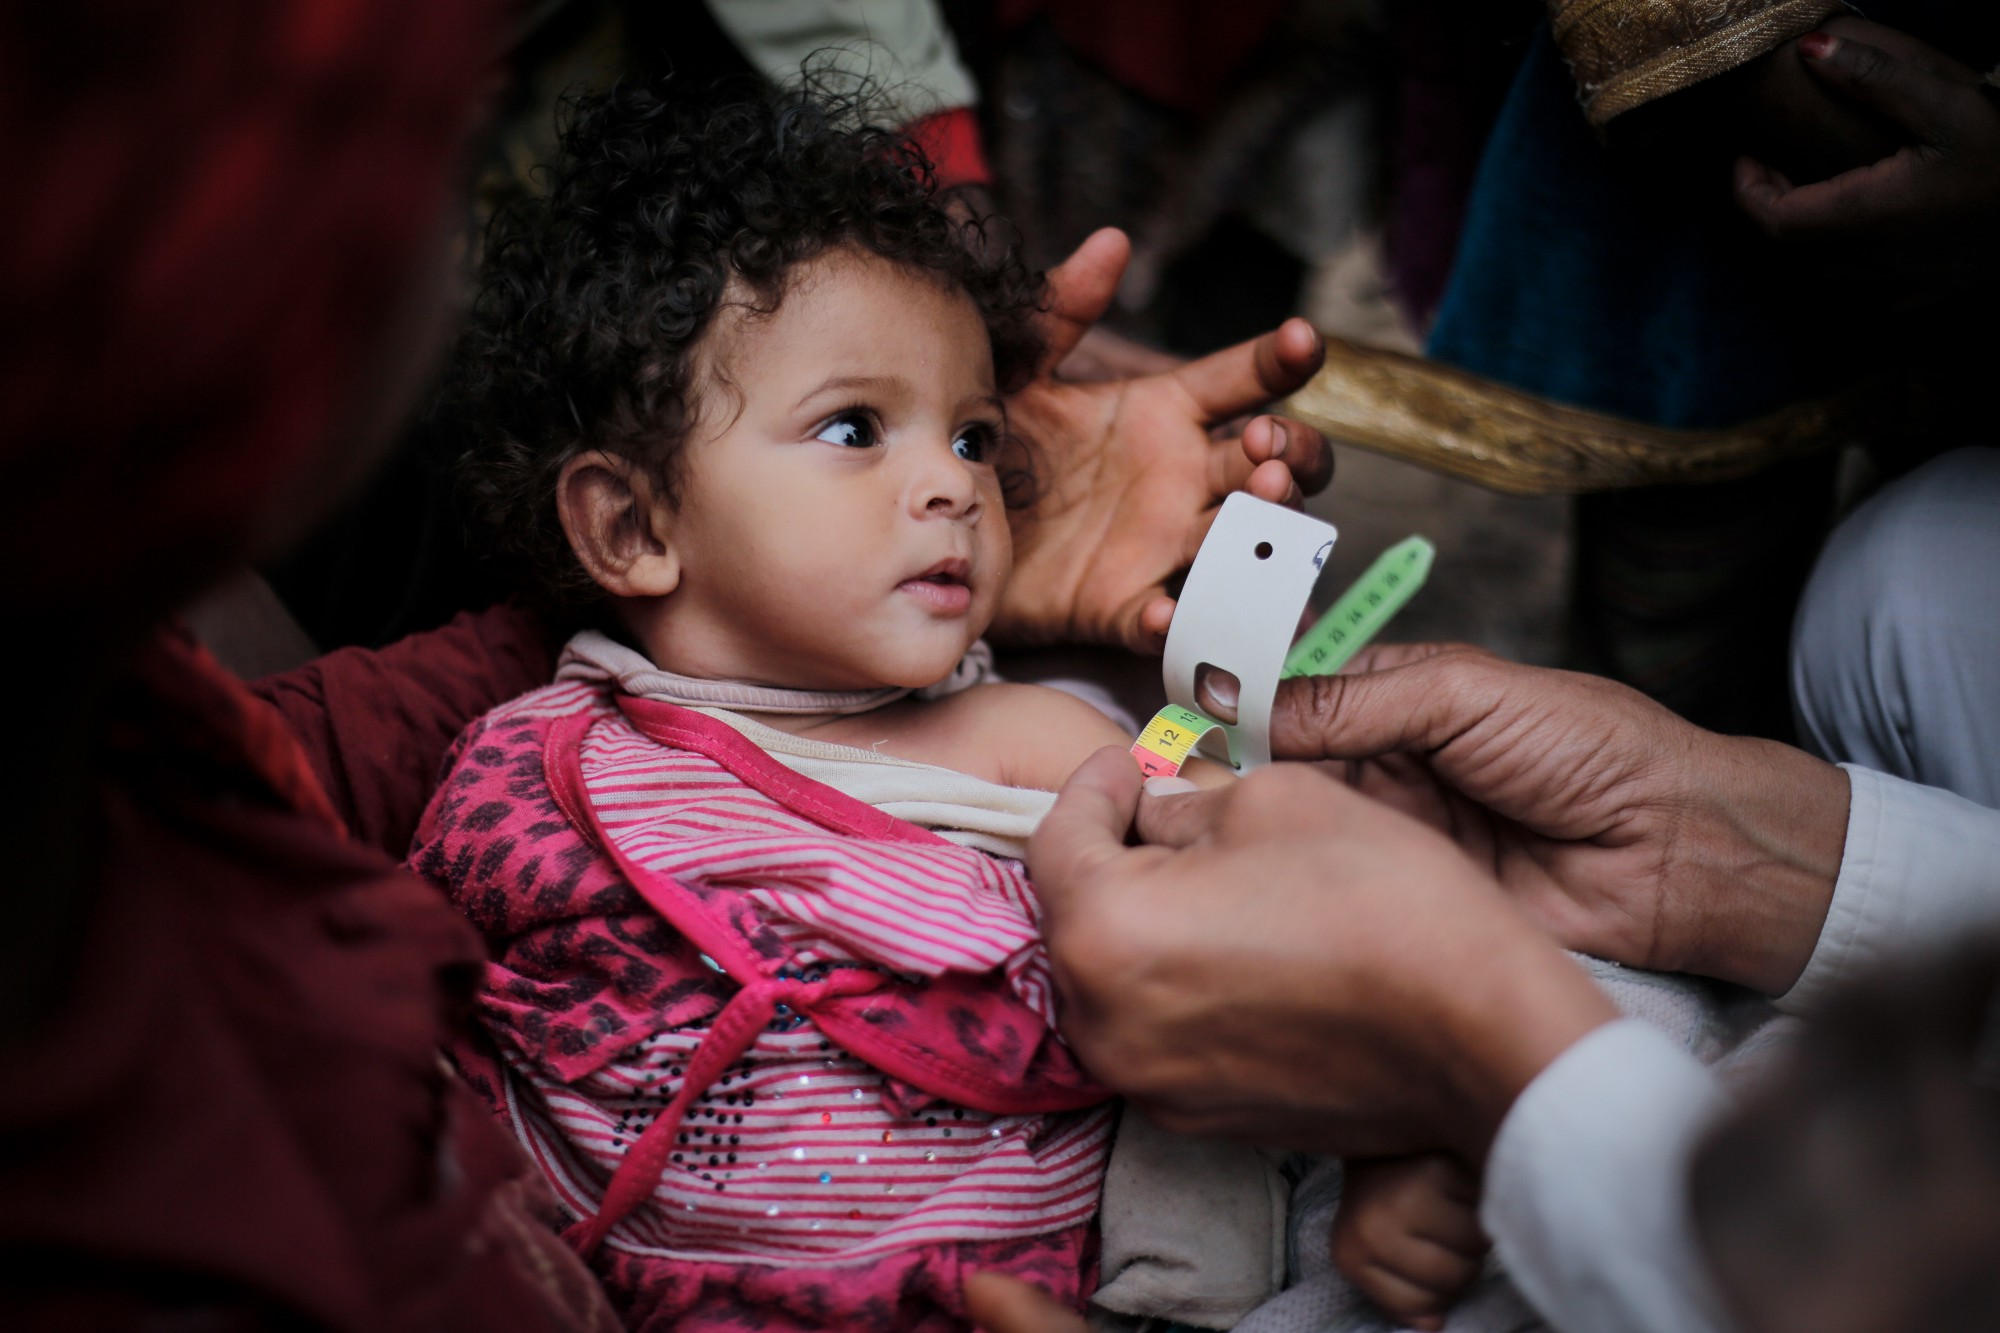 In Yemen, more than two million children are malnourished, including this young girl who is being treated by our partner UNICEF. Medical staff take her arm measurements to track her progress. Photo credit: © UNICEF/Almang